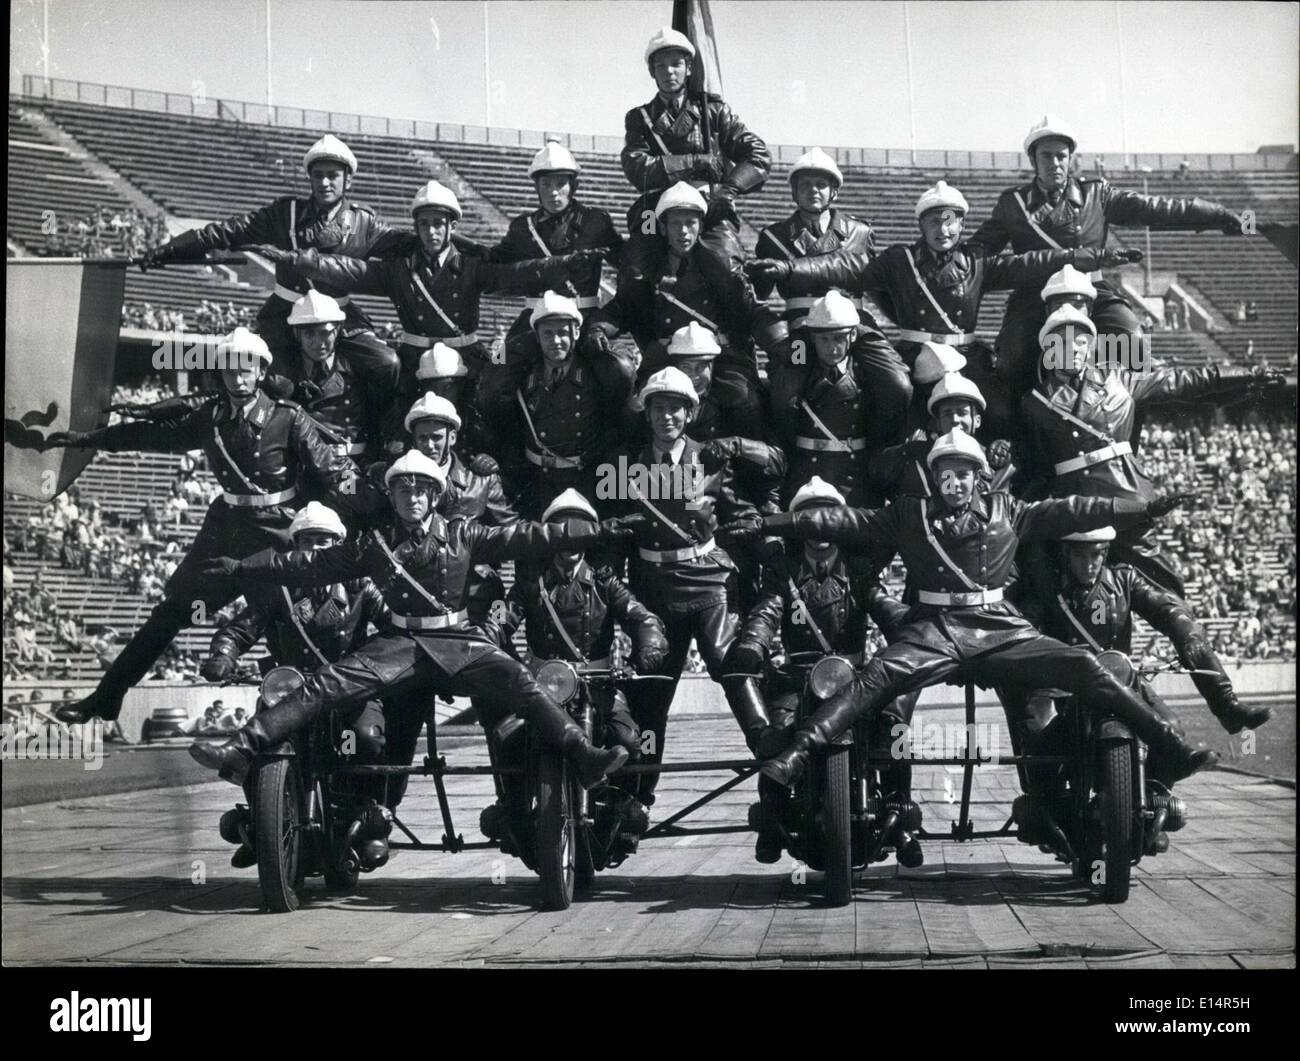 Apr. 18, 2012 - Final rehearsal for the big ''Police Parade 1958'': In the morning hours of 28.8.58 the final rehearsal for the - Stock Image